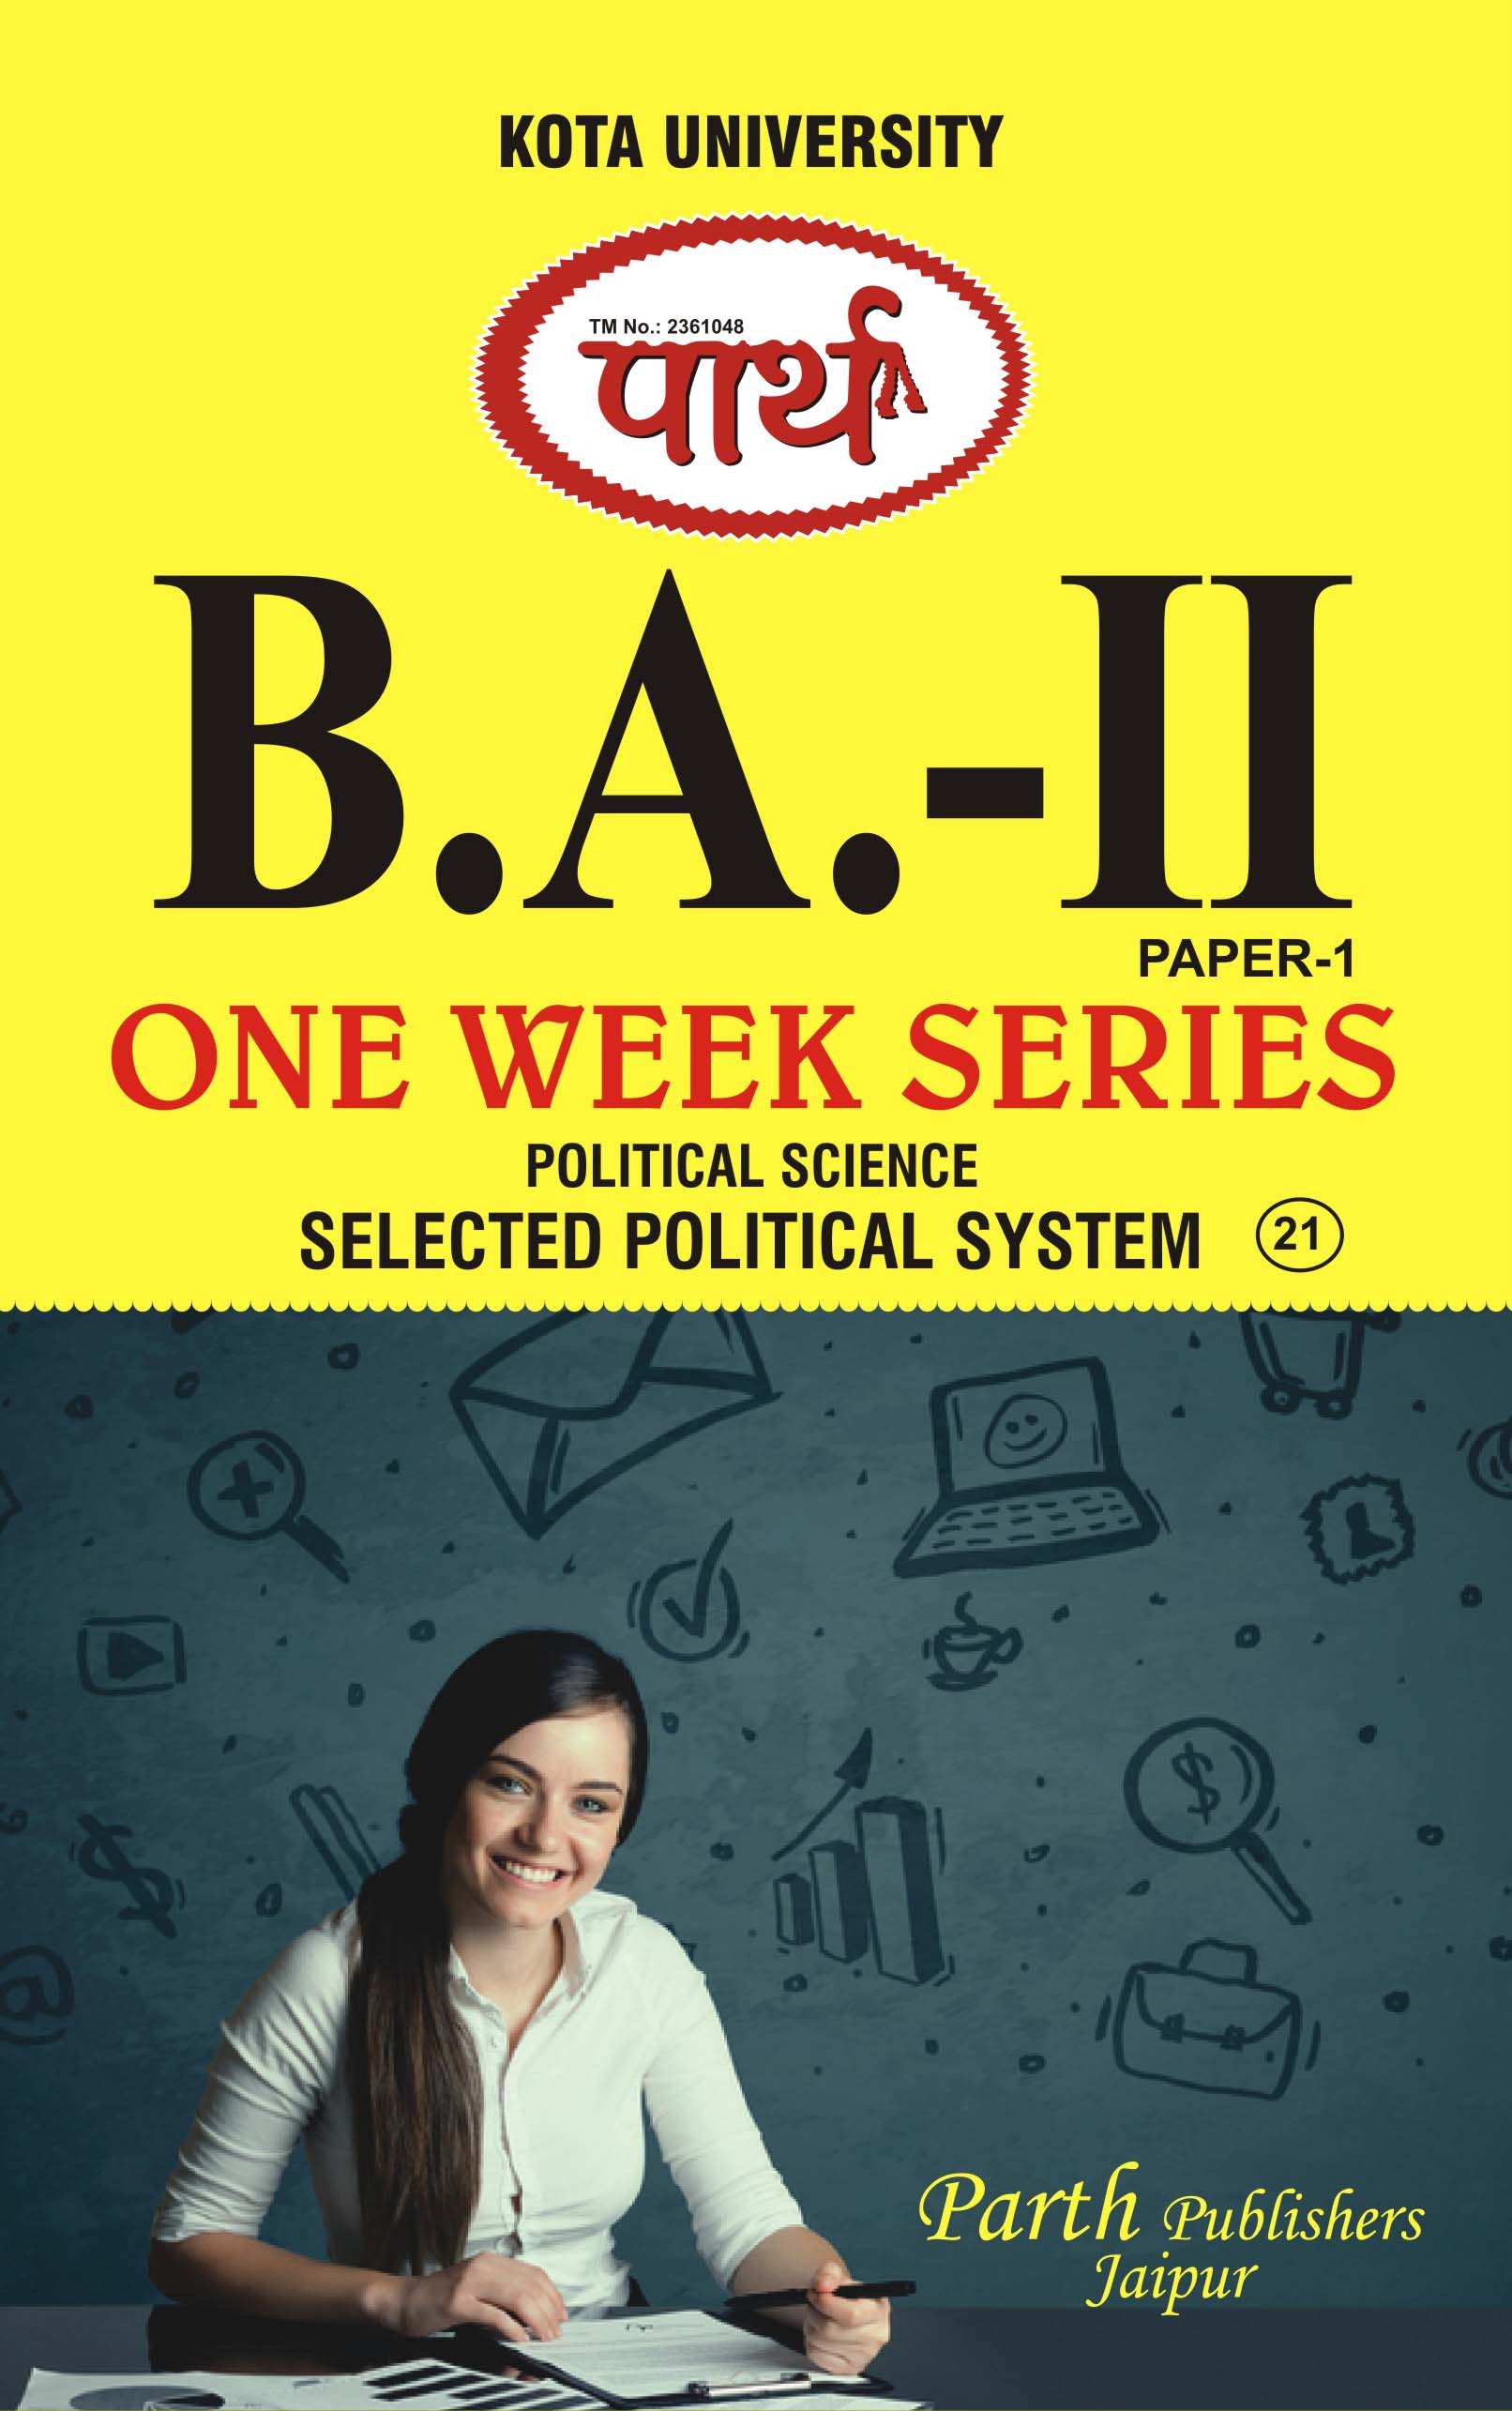 Political Science Selected Political System B.A. Part - II Paper - I Kota University Parth One Week Series (पोलिटिकल साइंस सिलेक्टेड पोलिटिकल सिस्टम) - Online Book Mart